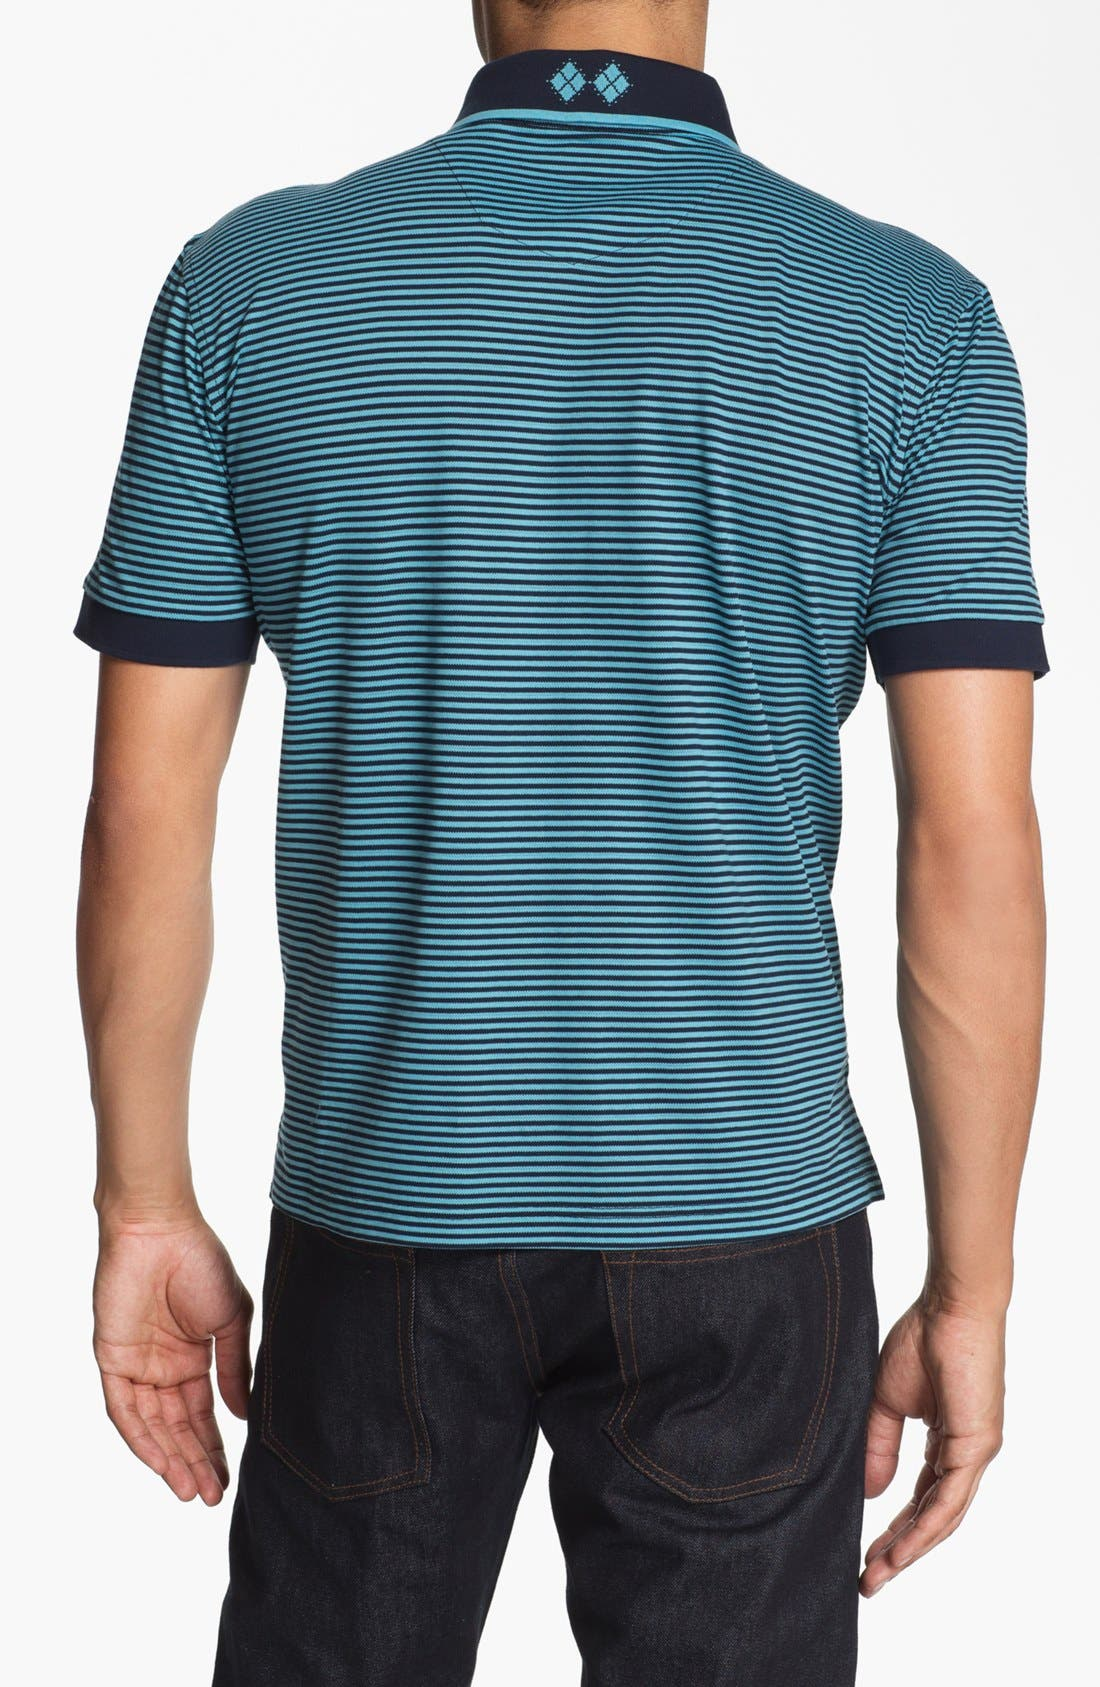 Alternate Image 1 Selected - Robert Graham 'Barcelo' Knit Polo